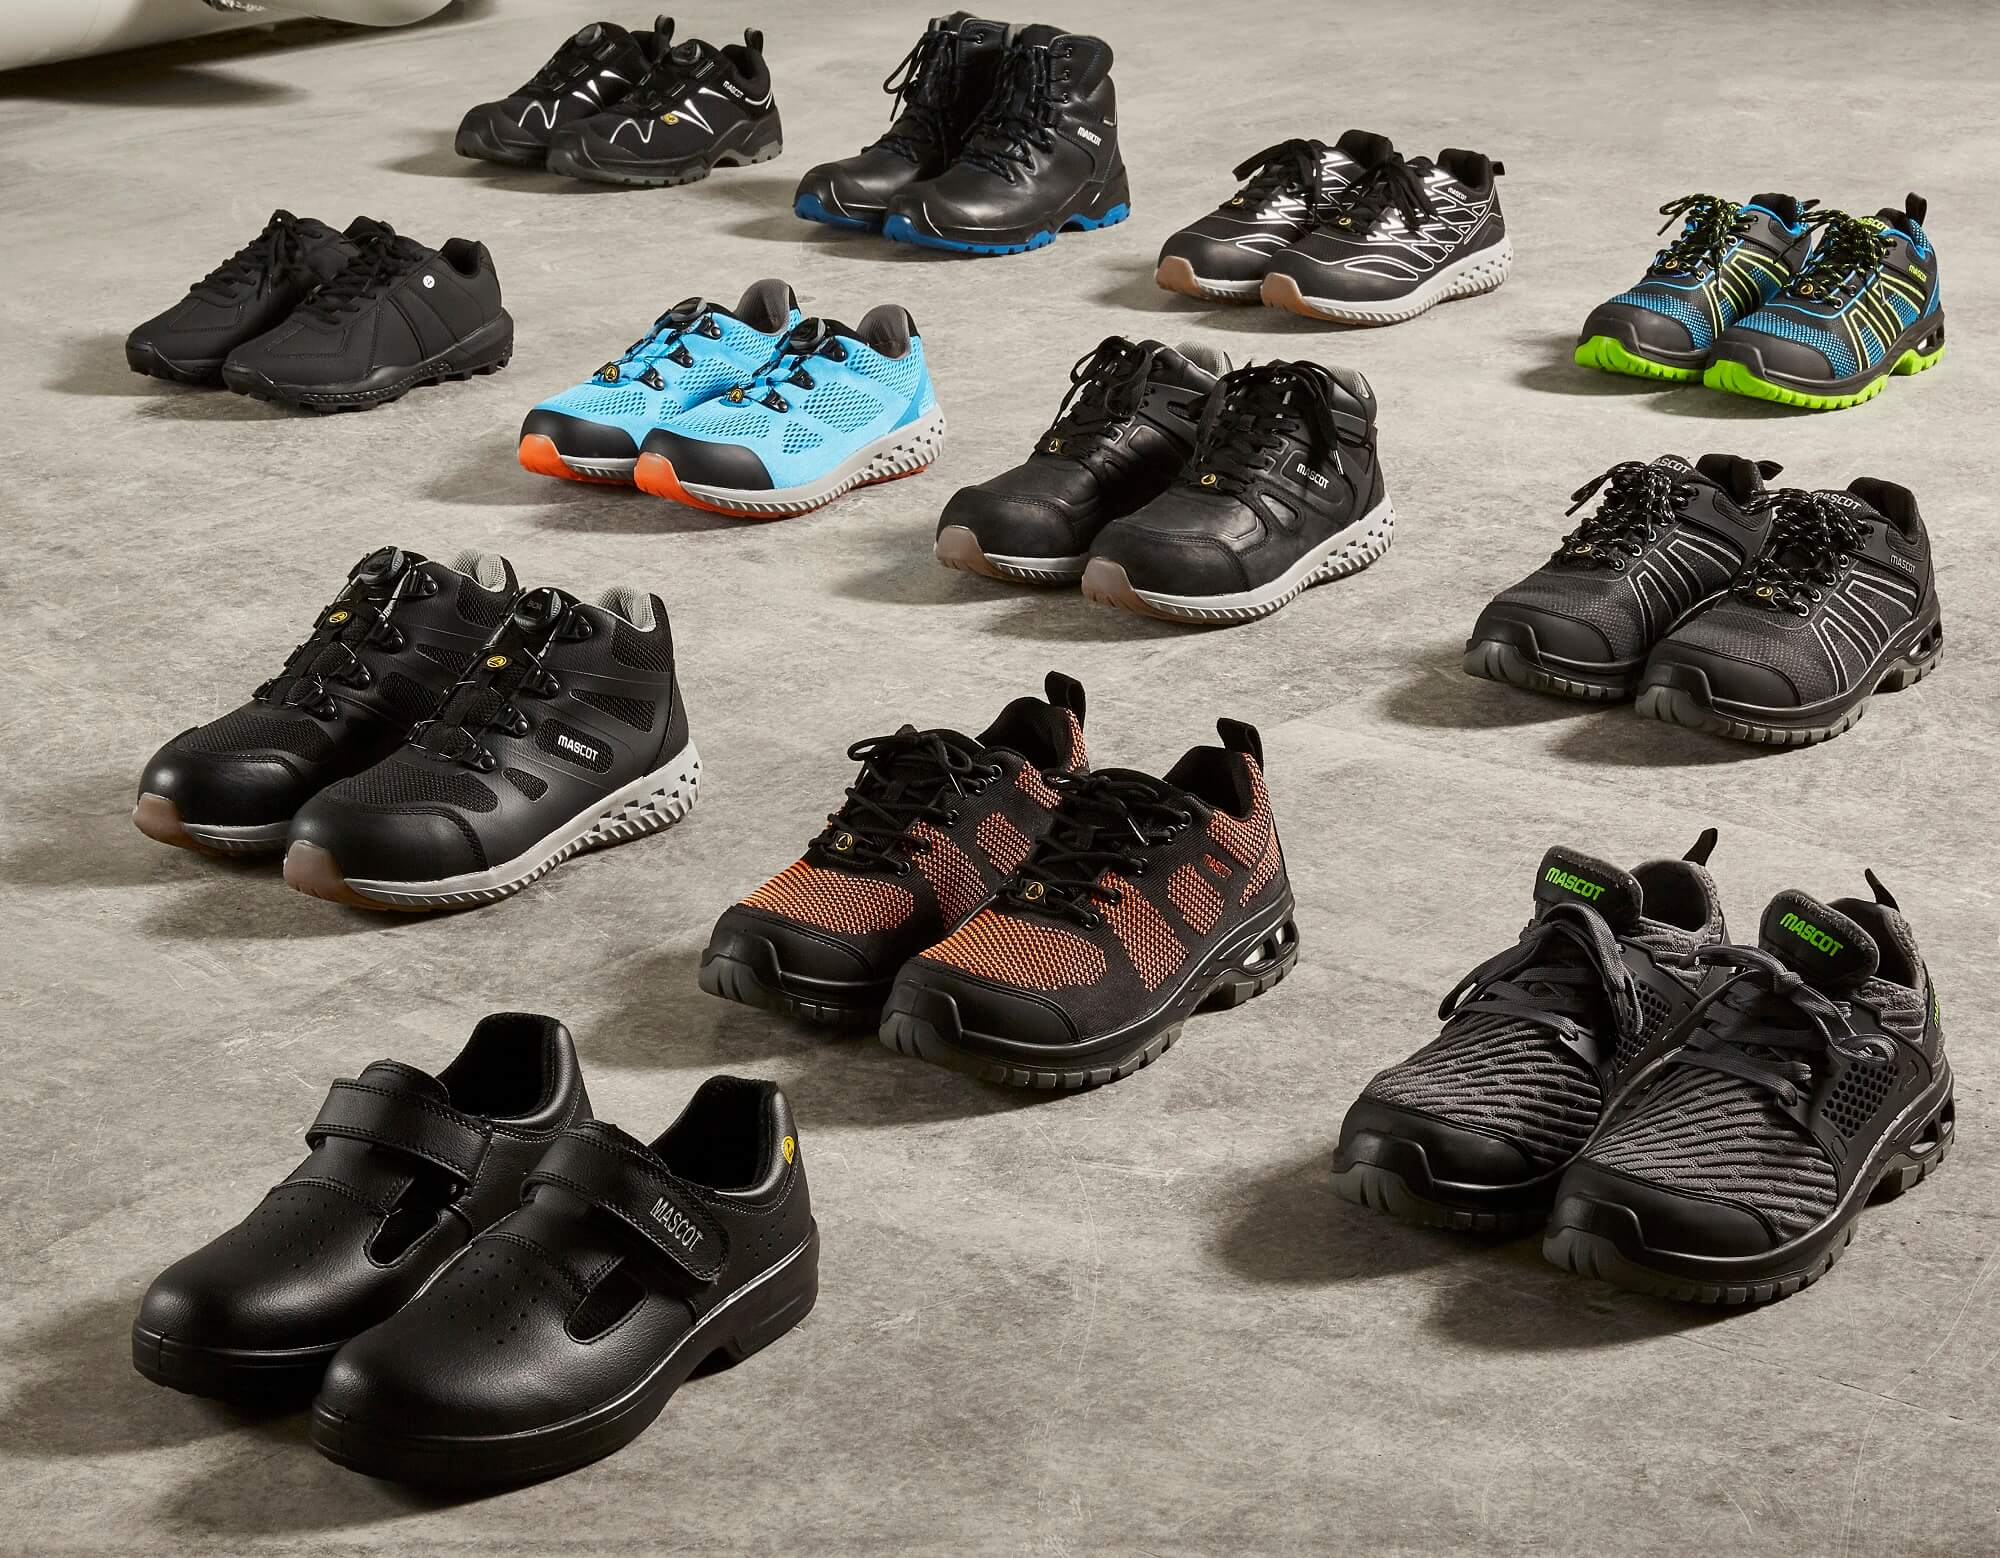 MASCOT® Footwear & Safety Shoe - Collage